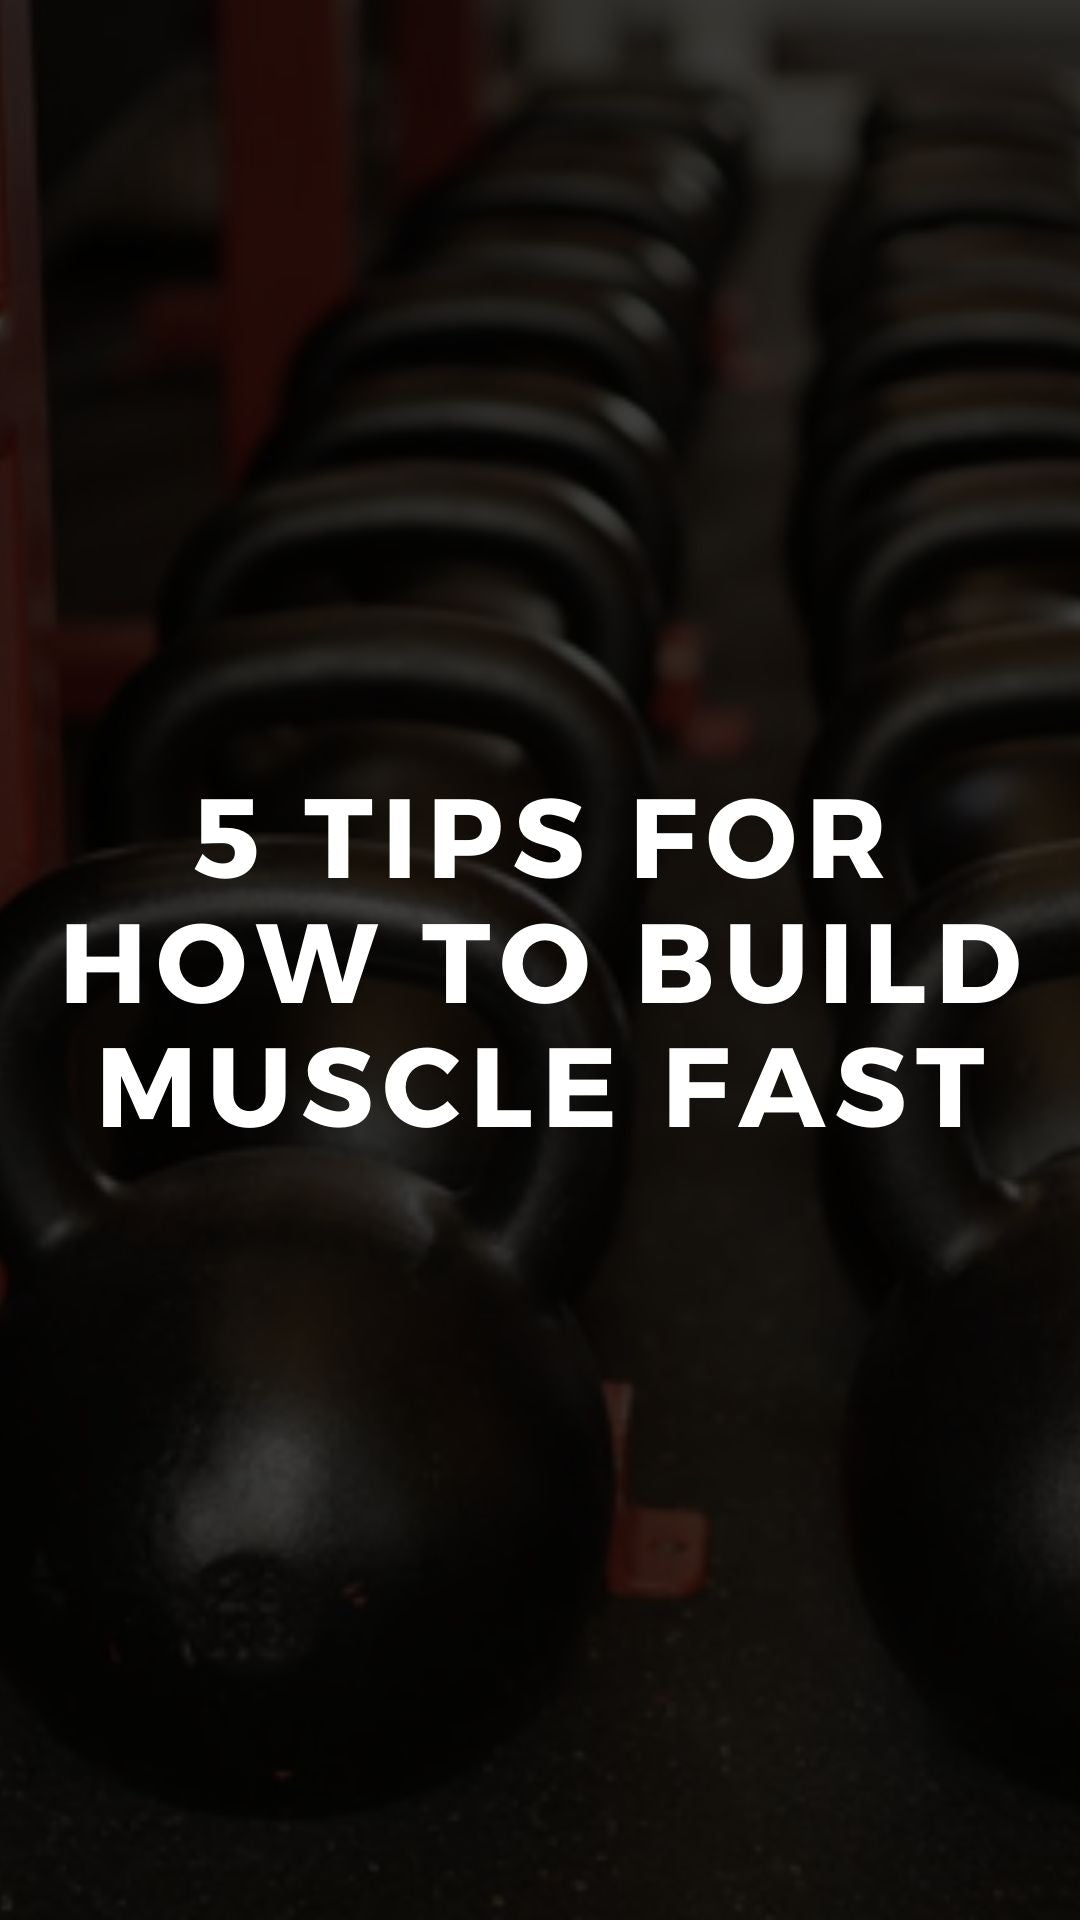 5 Tips for How to Build Muscle Fast